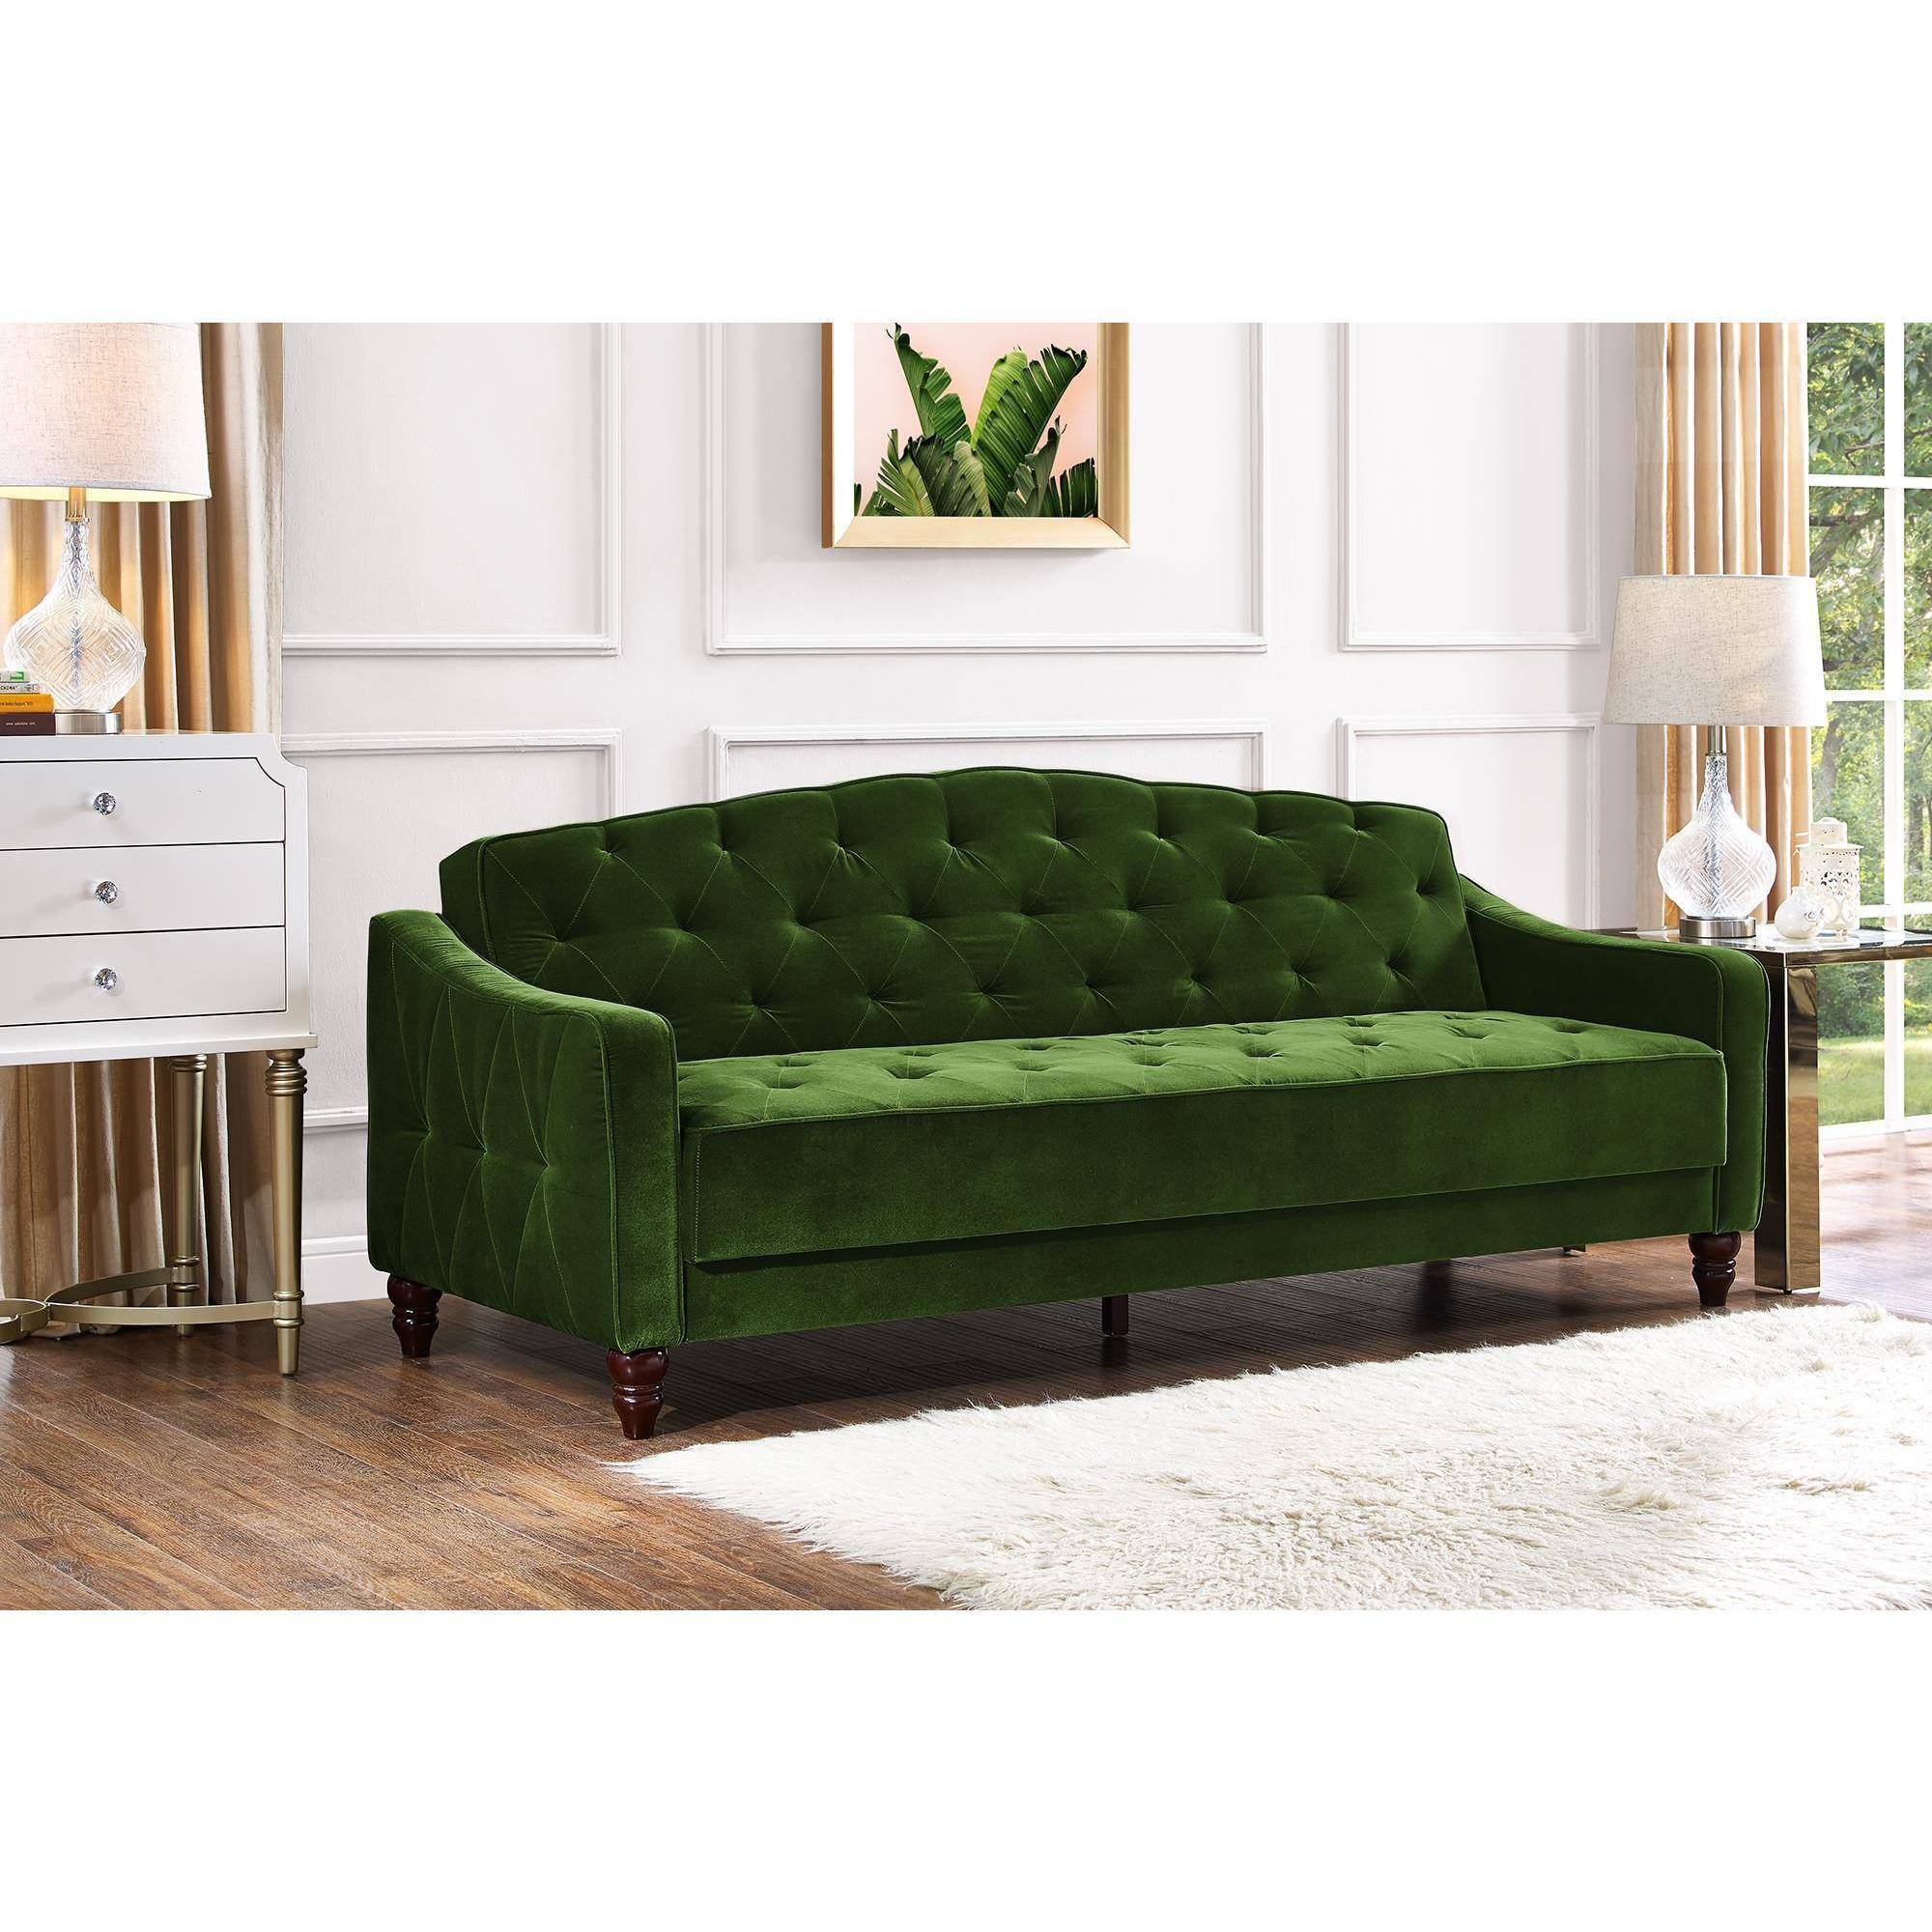 Novogratz Vintage Tufted Sleeper Sofa Bed Ii Multiple Colors